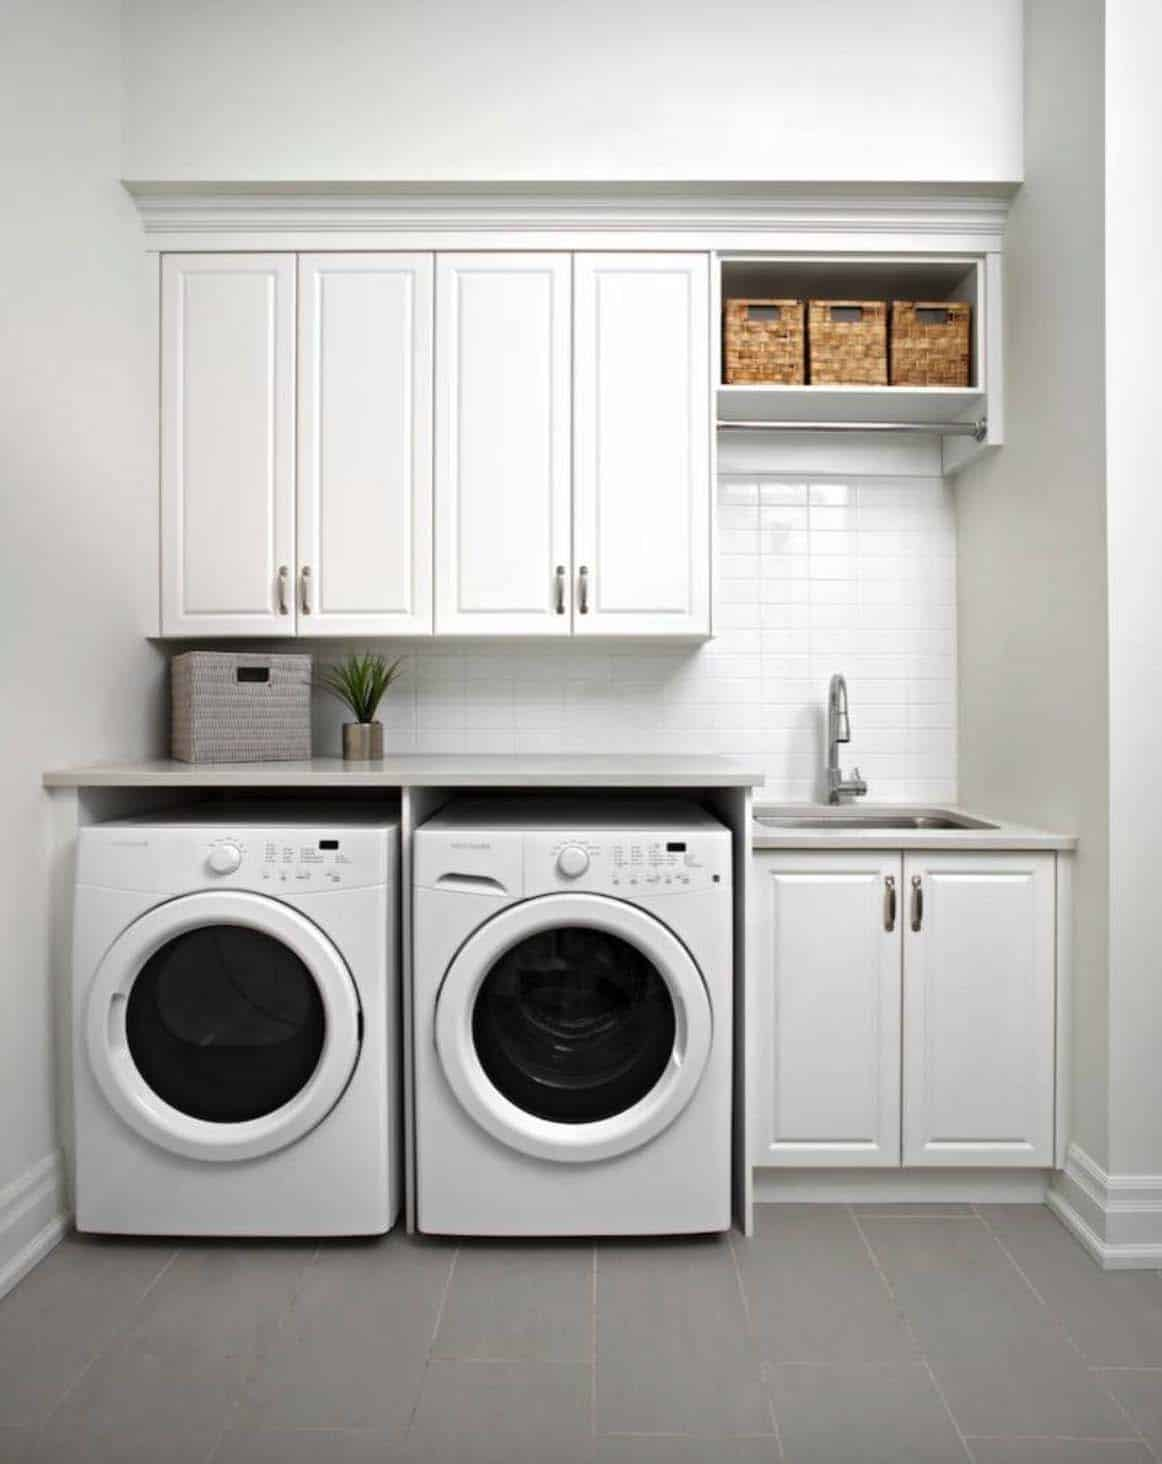 Functional-Stylish Small Laundry Rooms-14-1 Kindesign